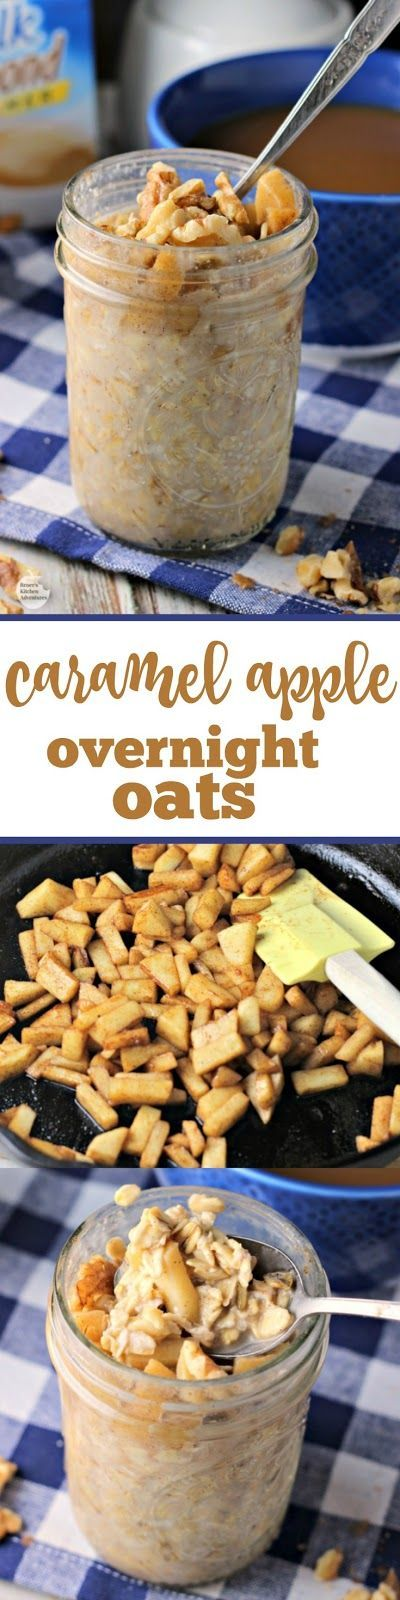 Caramel Apple Overnight Oats   by Renee's Kitchen Adventures - easy recipe for caramel apple flavored no bake oatmeal perfect for breakfast on-the-go! #SilkSiptoSpoon ad #RKArecipes